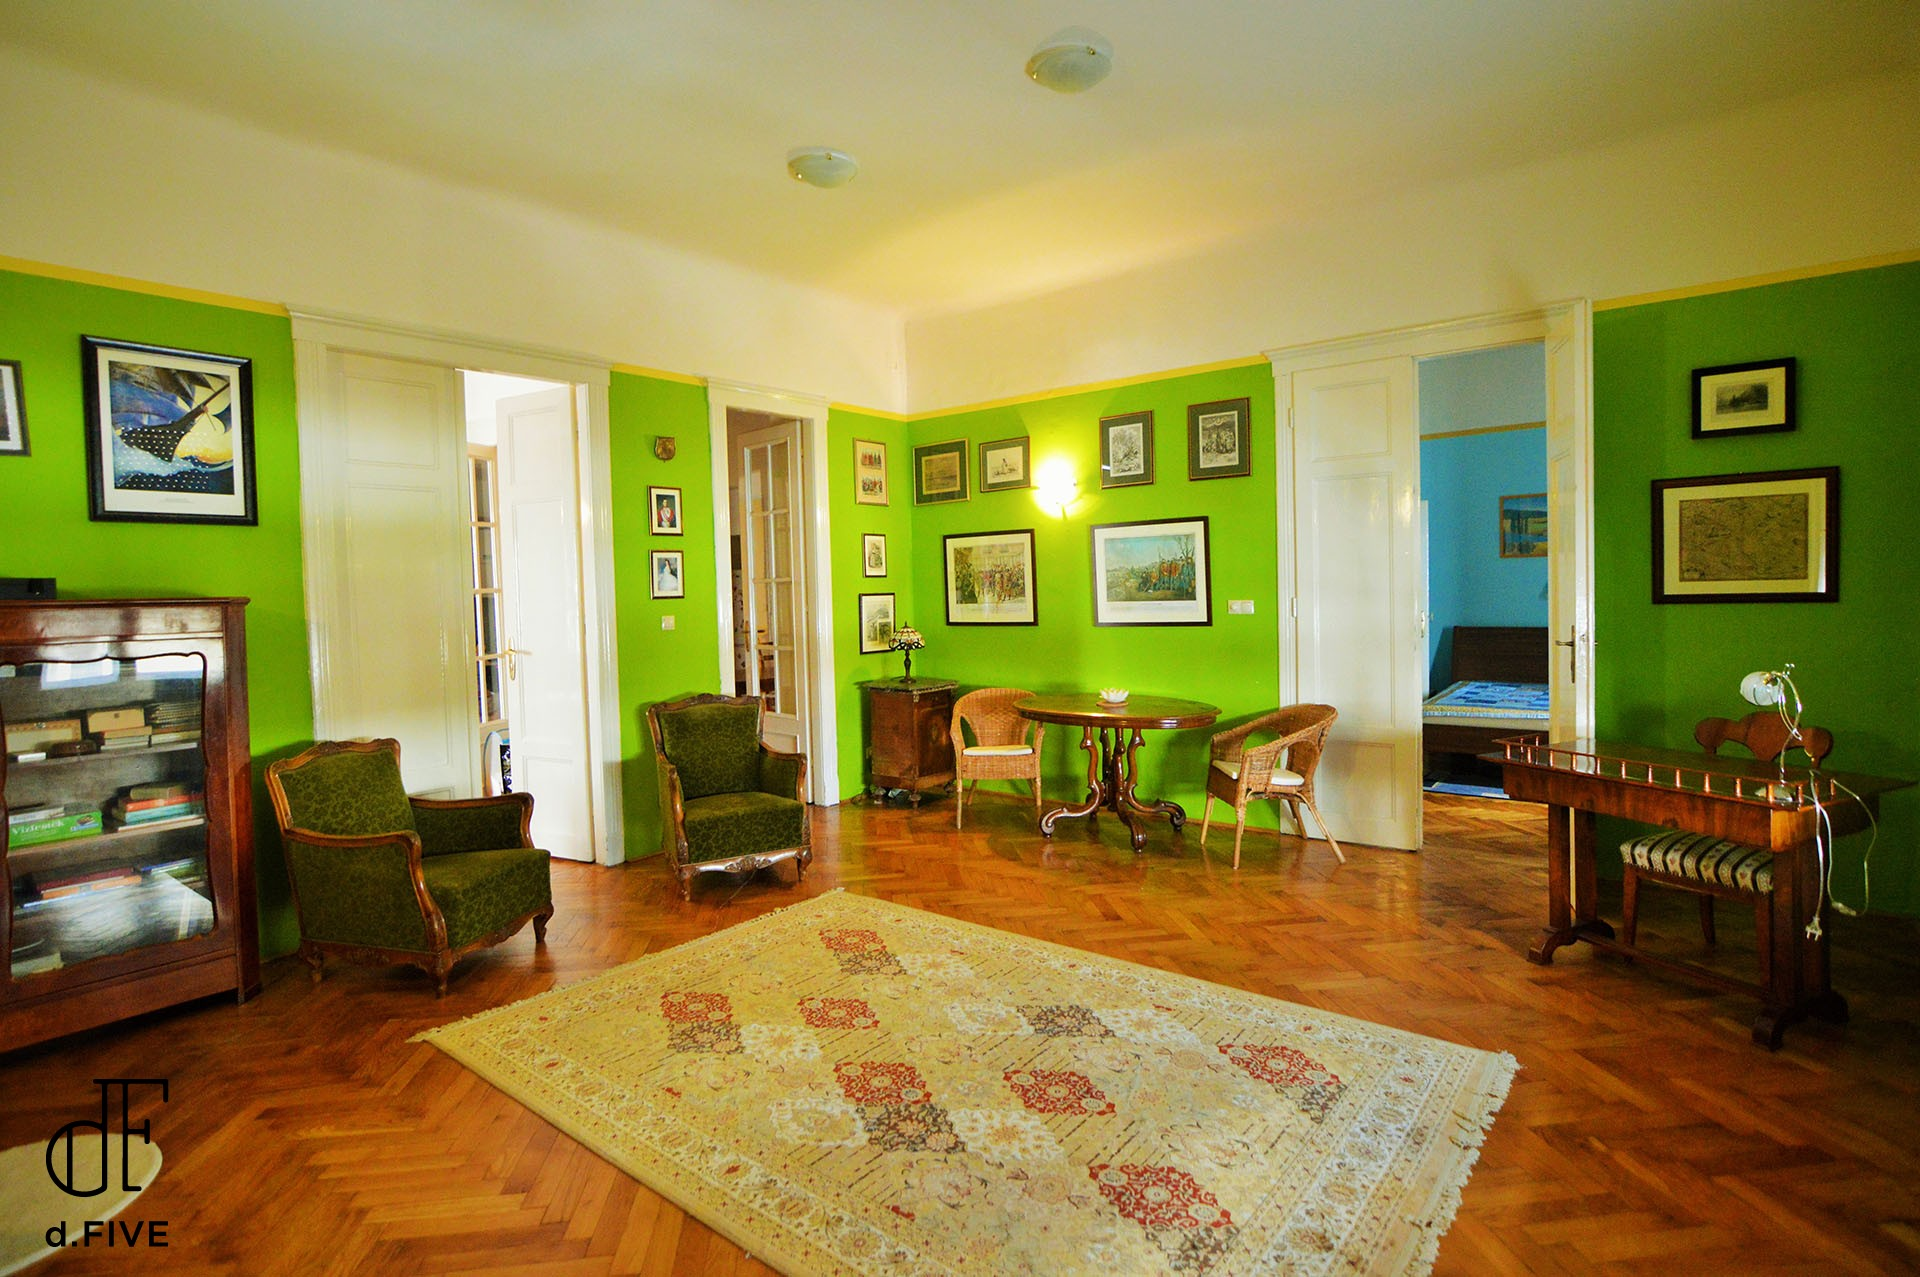 d.FIVE Family Apartment at Margaret Island